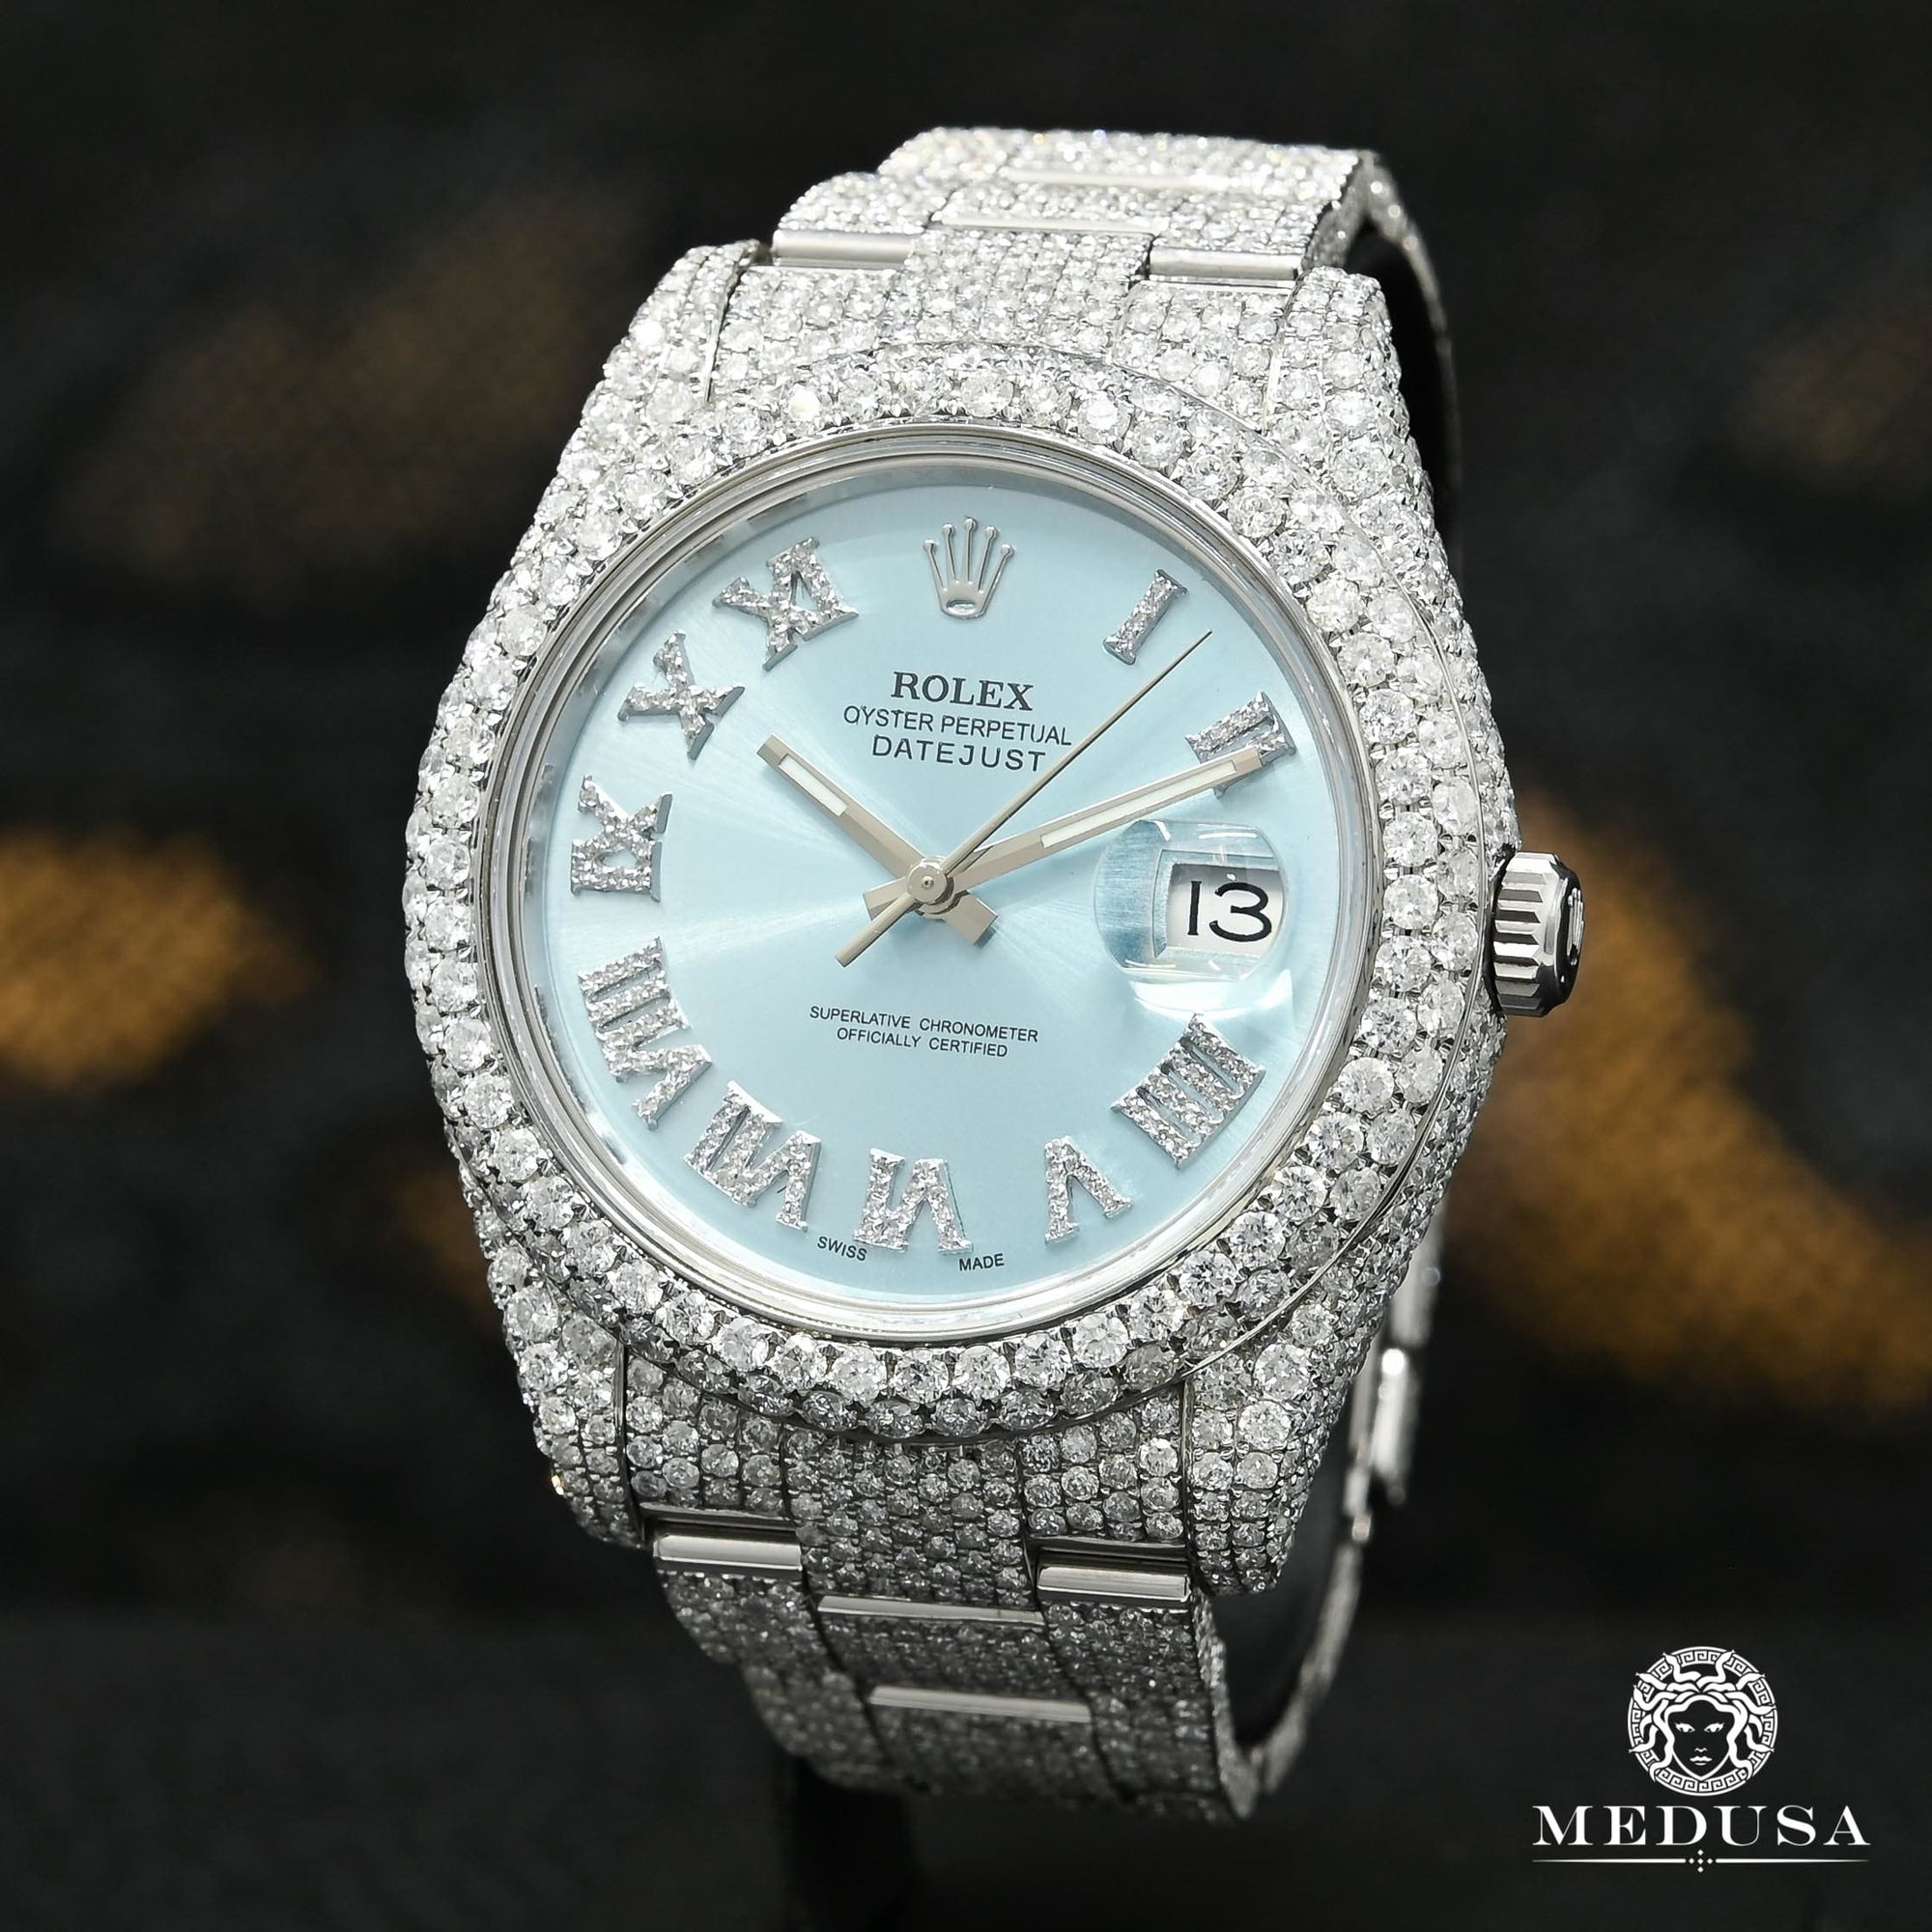 Rolex Datejust 41mm - Honeycomb Cyan